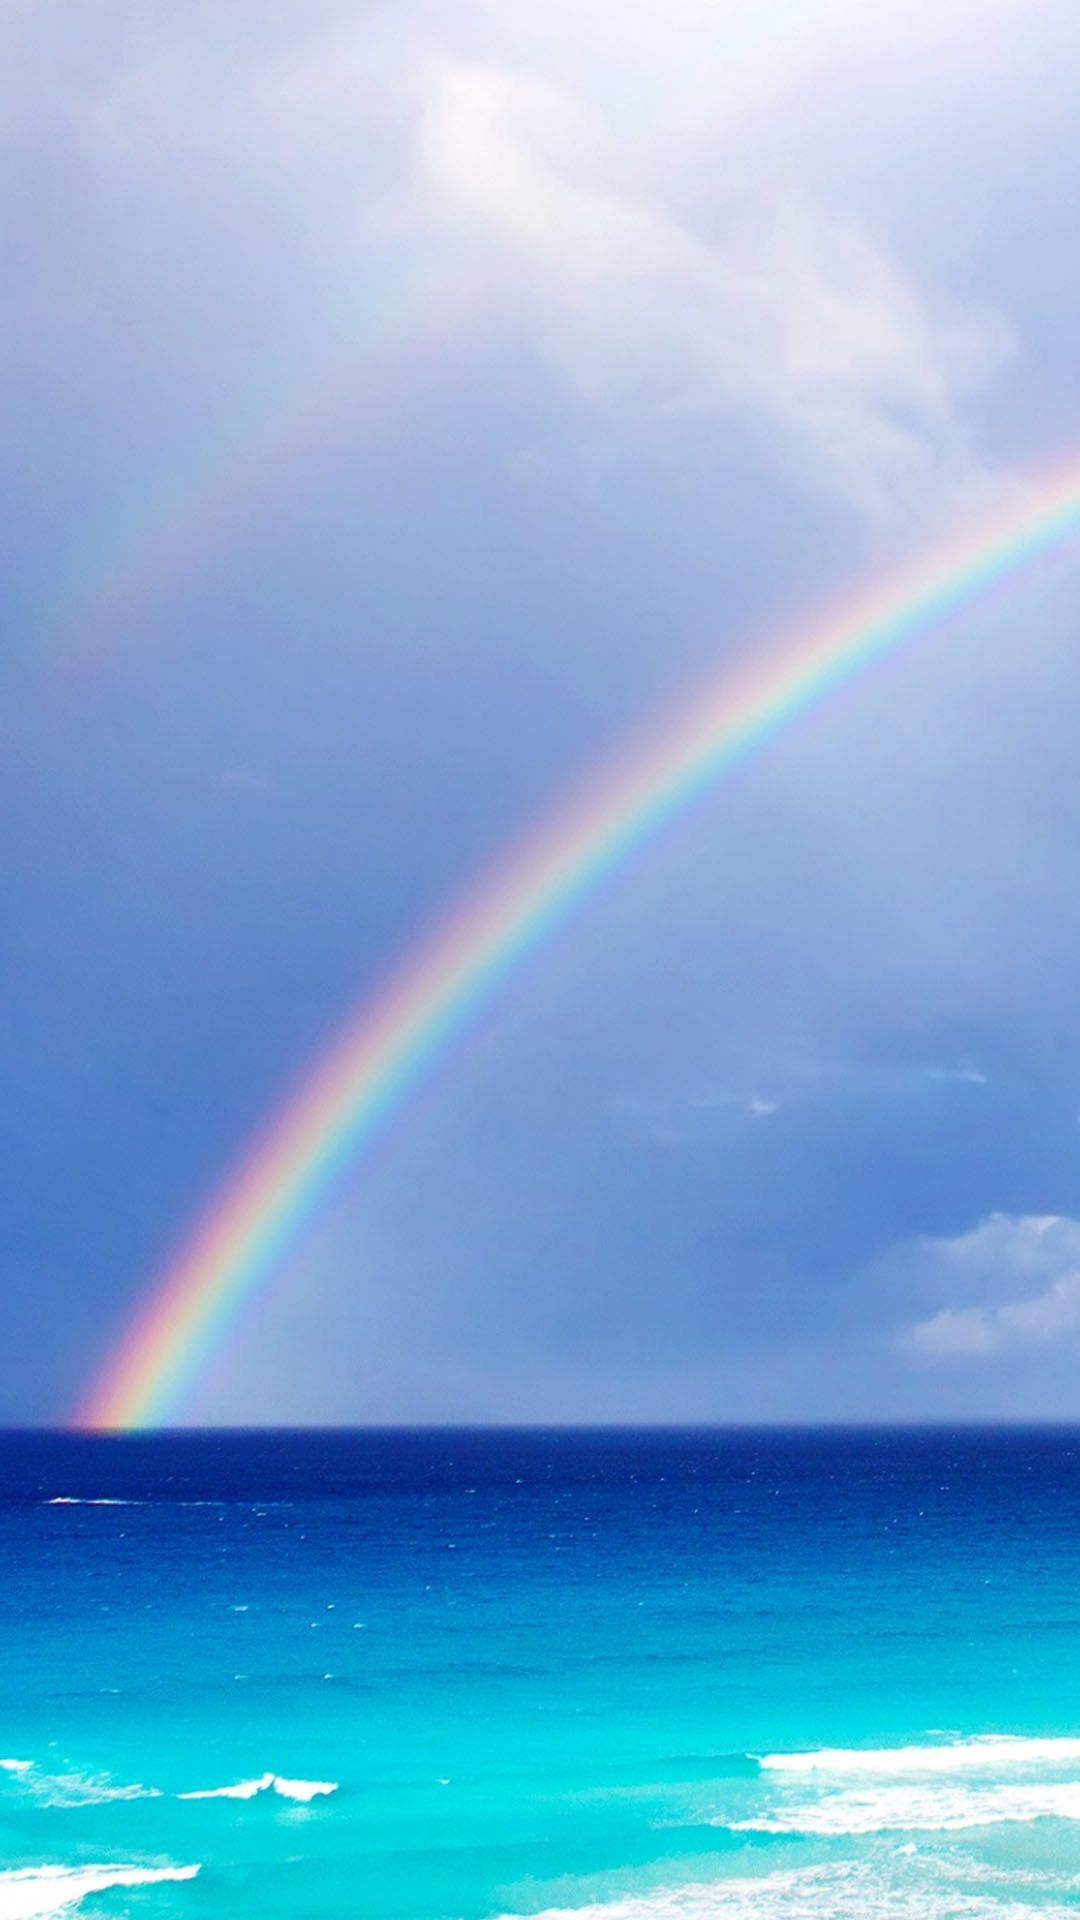 Rainbow Wallpaper Download With Images Rainbow Wallpaper Cloud Wallpaper Rainbow Sky